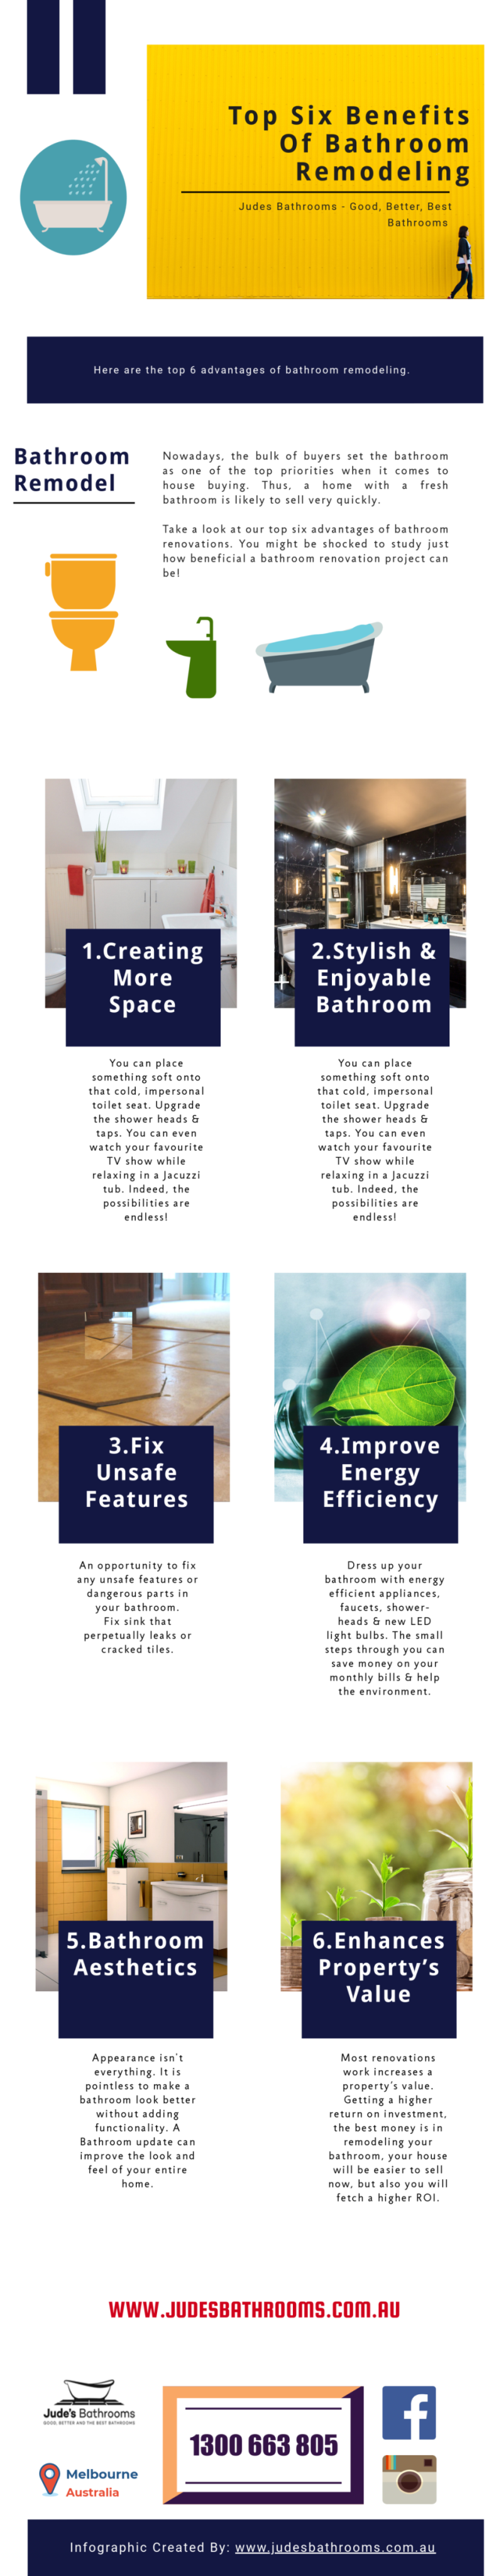 Bathroom Renovations Advantages Infographic